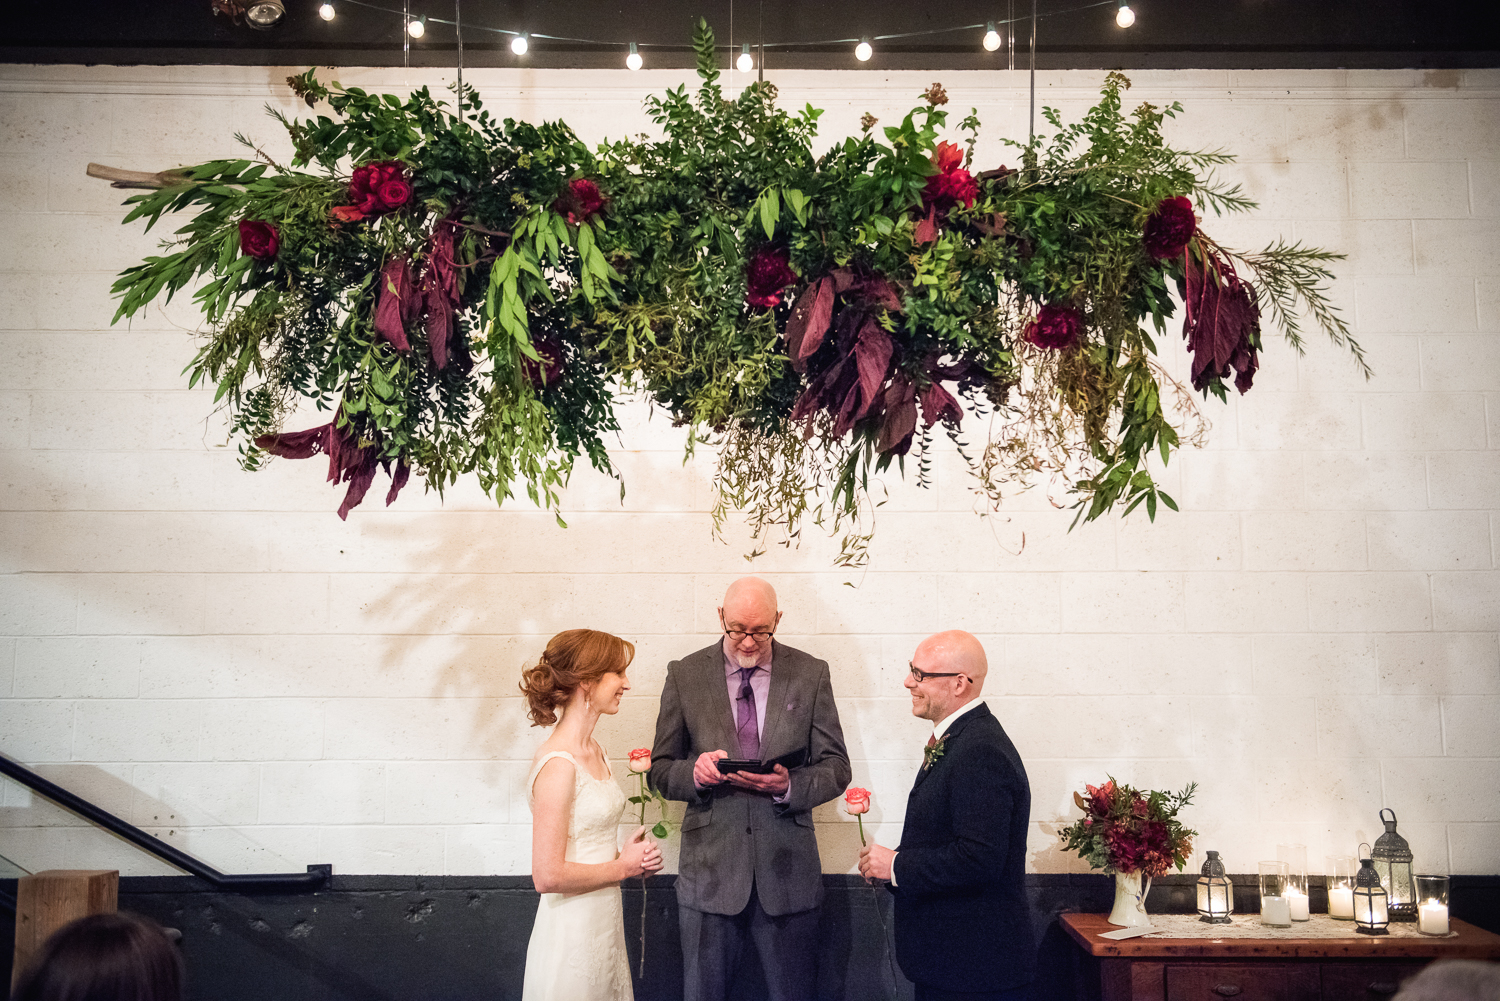 Union/Pine Wedding Ceremony, Portland, OR